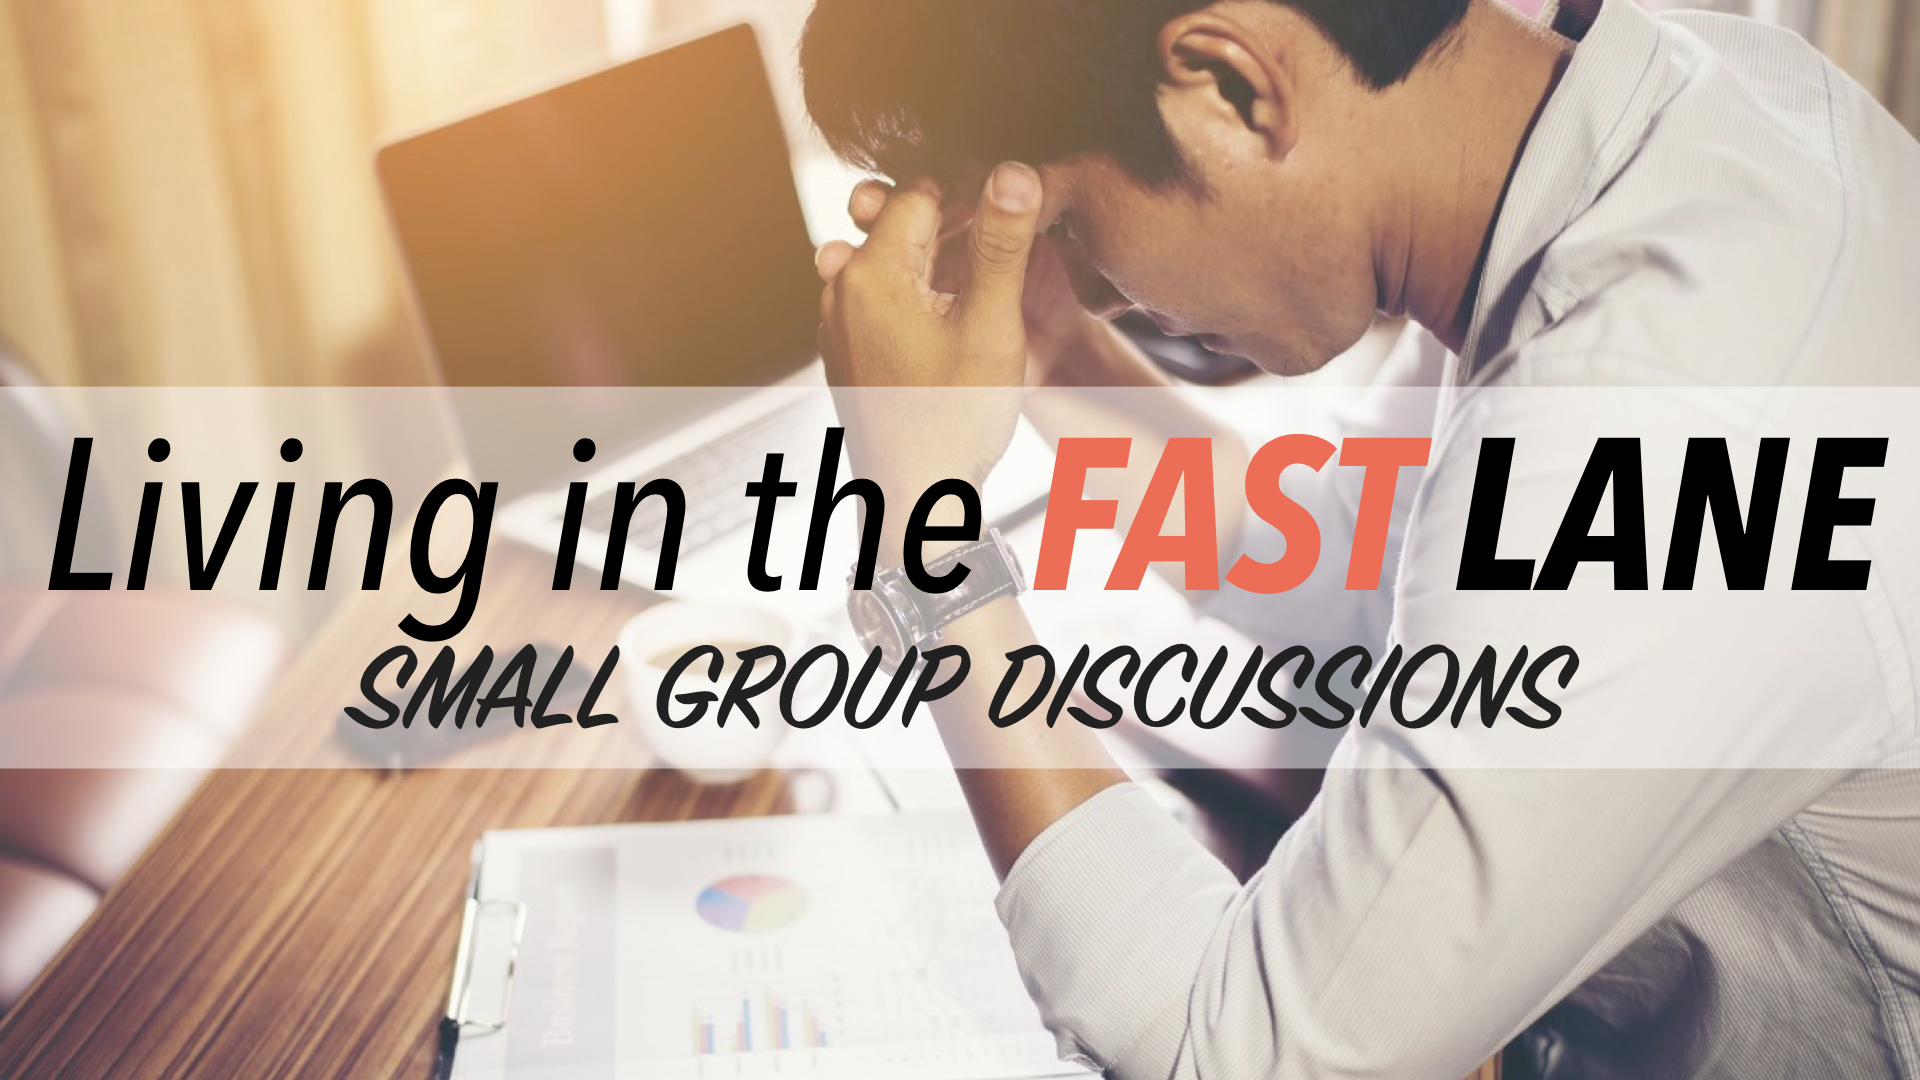 Living in the Fast Lane Small Group Discussions